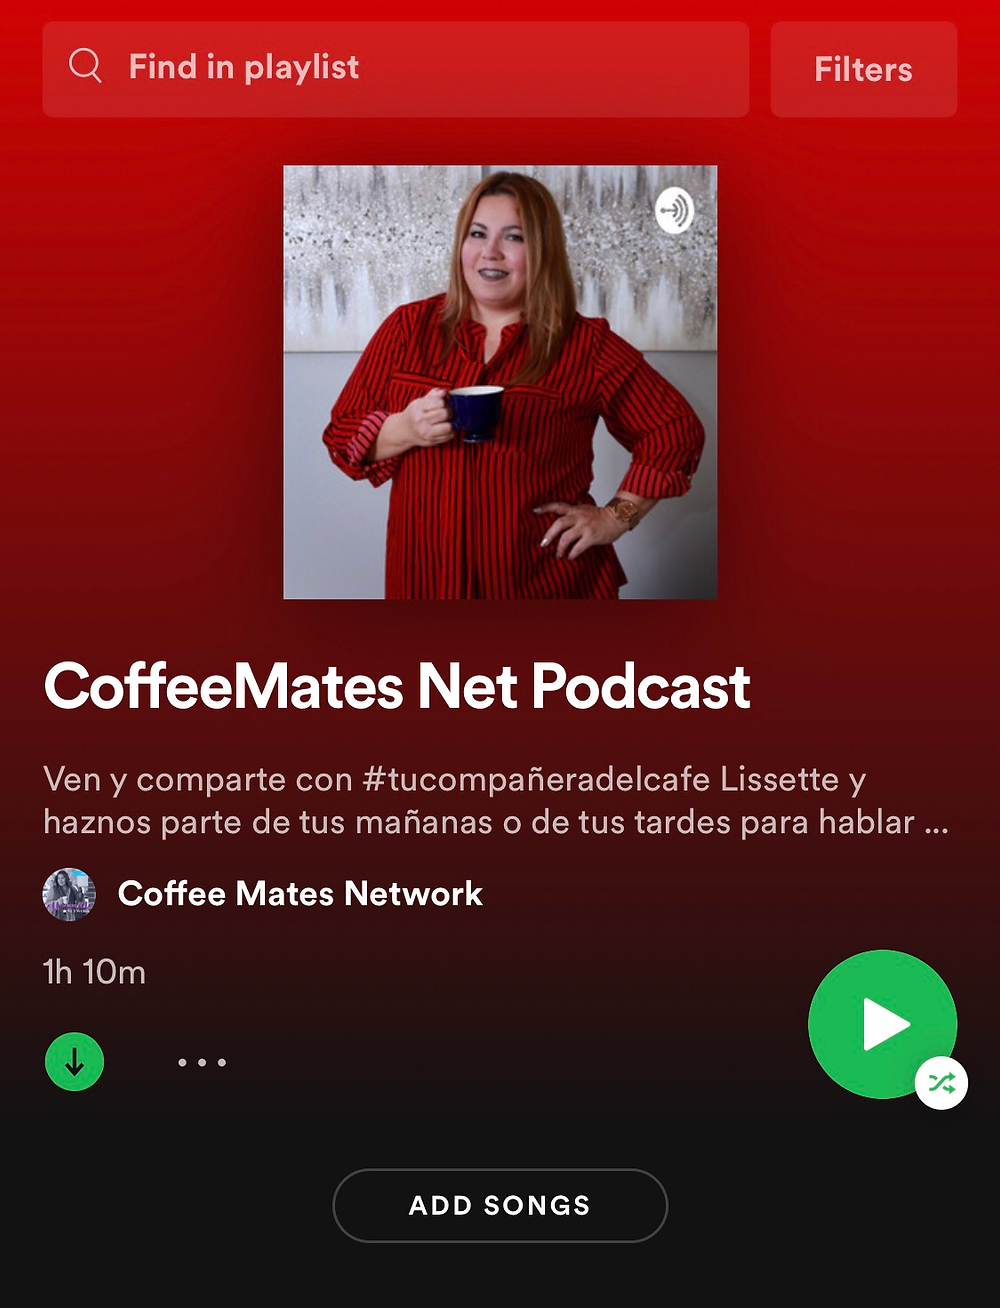 CoffeeMates Net Podcast